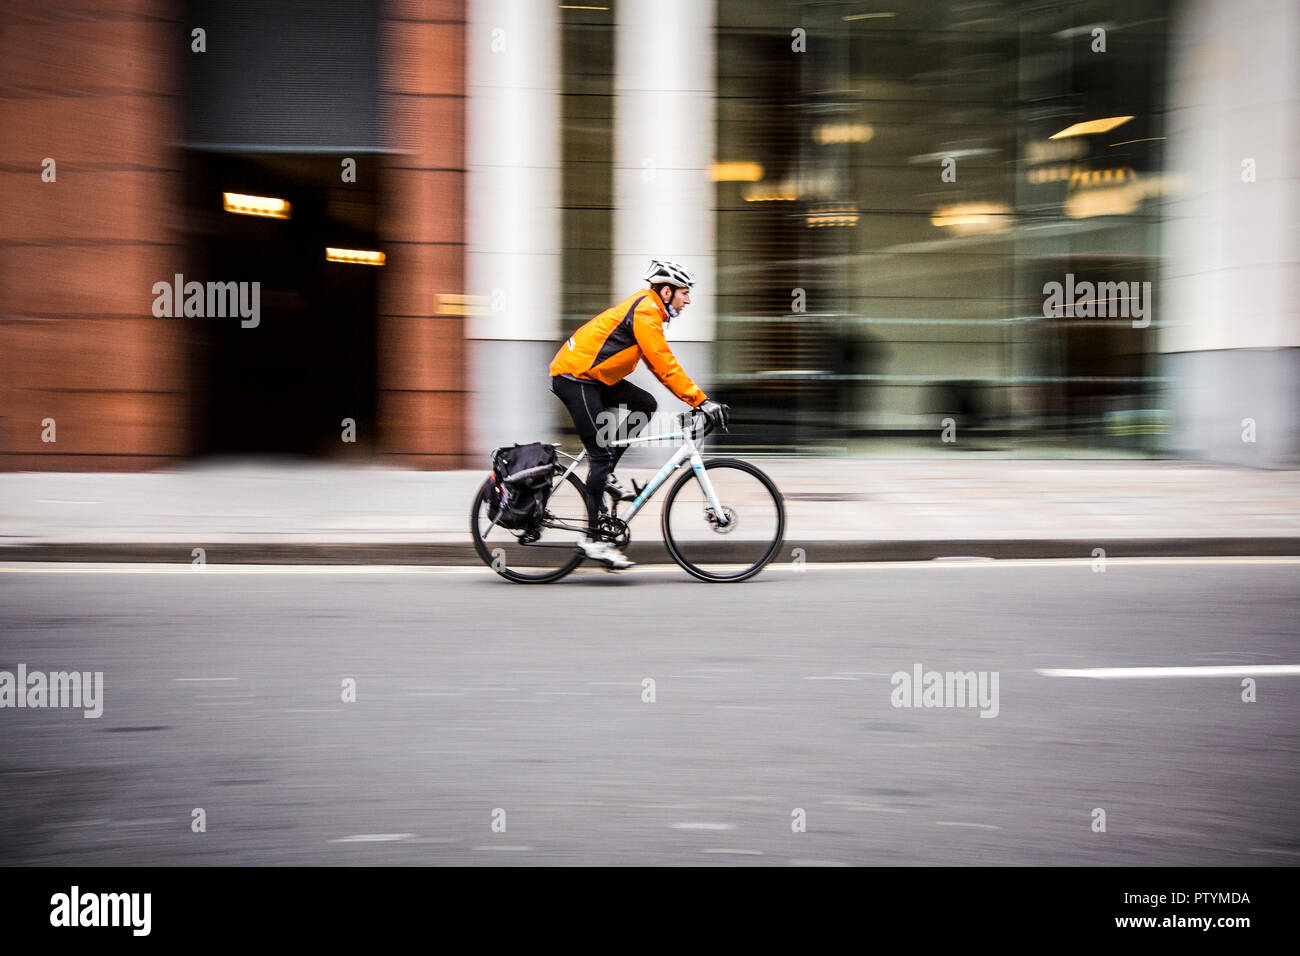 Motion blur of a cyclist speeding in central London. England, UK. - Stock Image